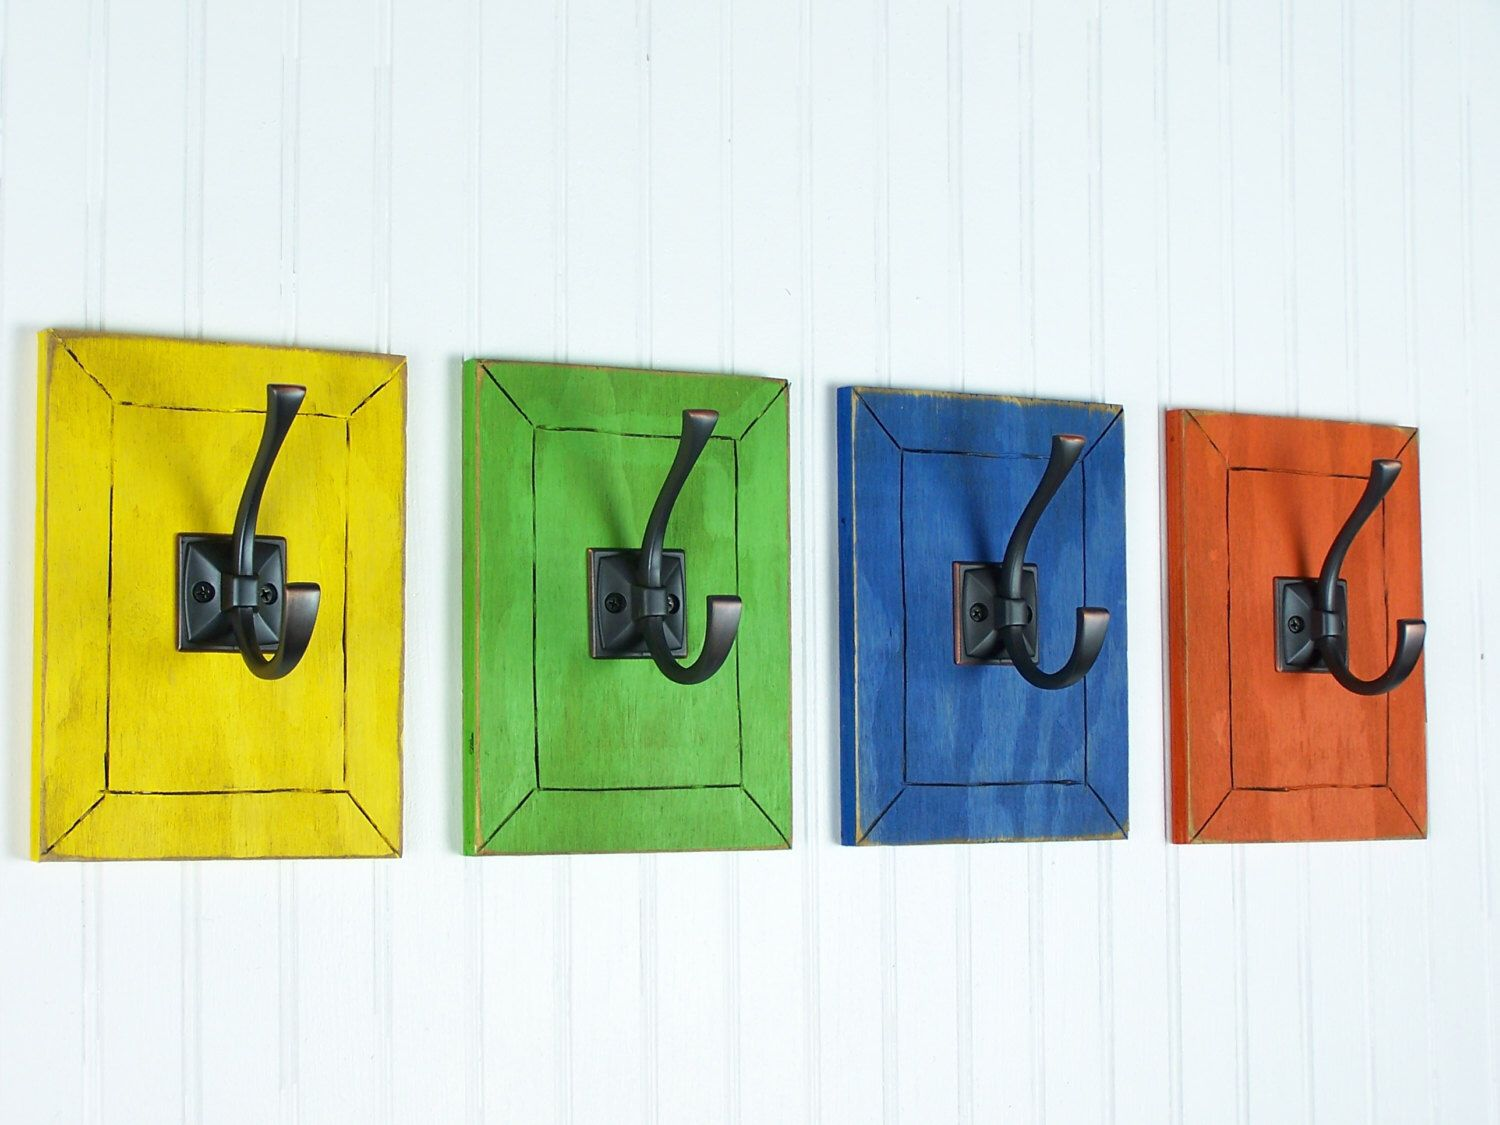 Kids Bedroom Hooks colorful wall art decorative wall hooks rainbow decor kids bedroom